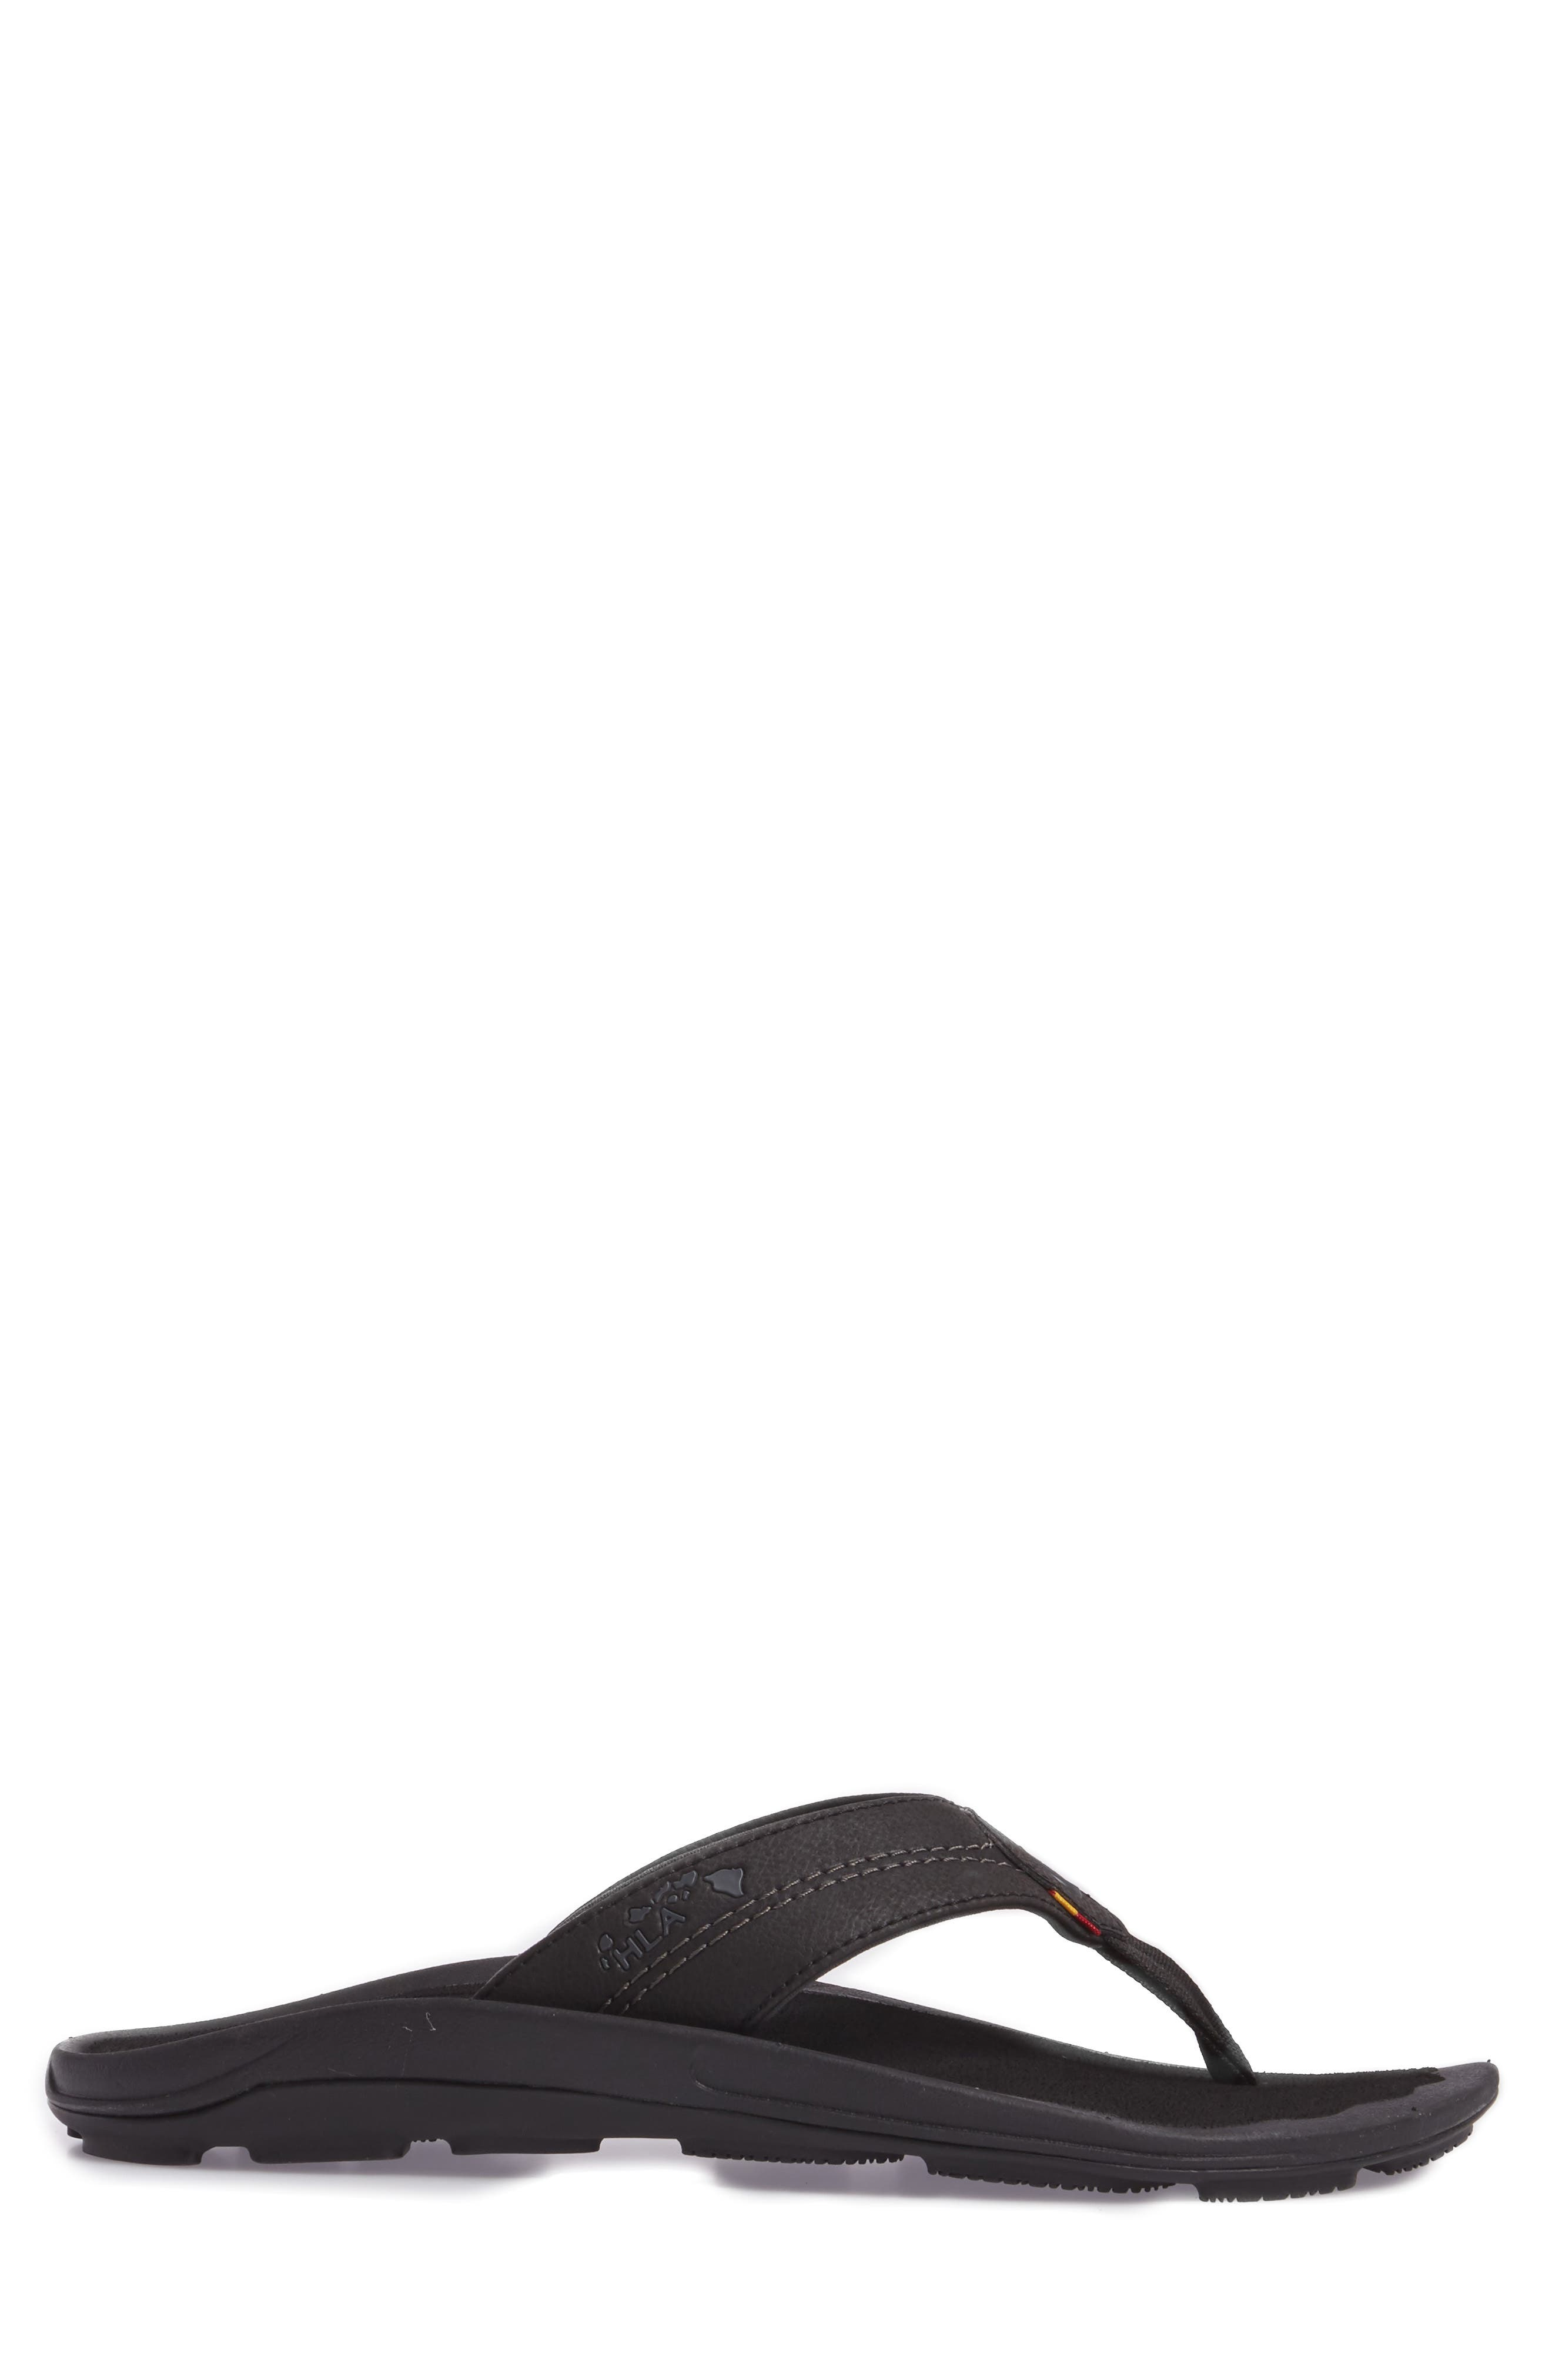 OLUKAI, Kipi Flip Flop, Alternate thumbnail 3, color, BLACK/ BLACK